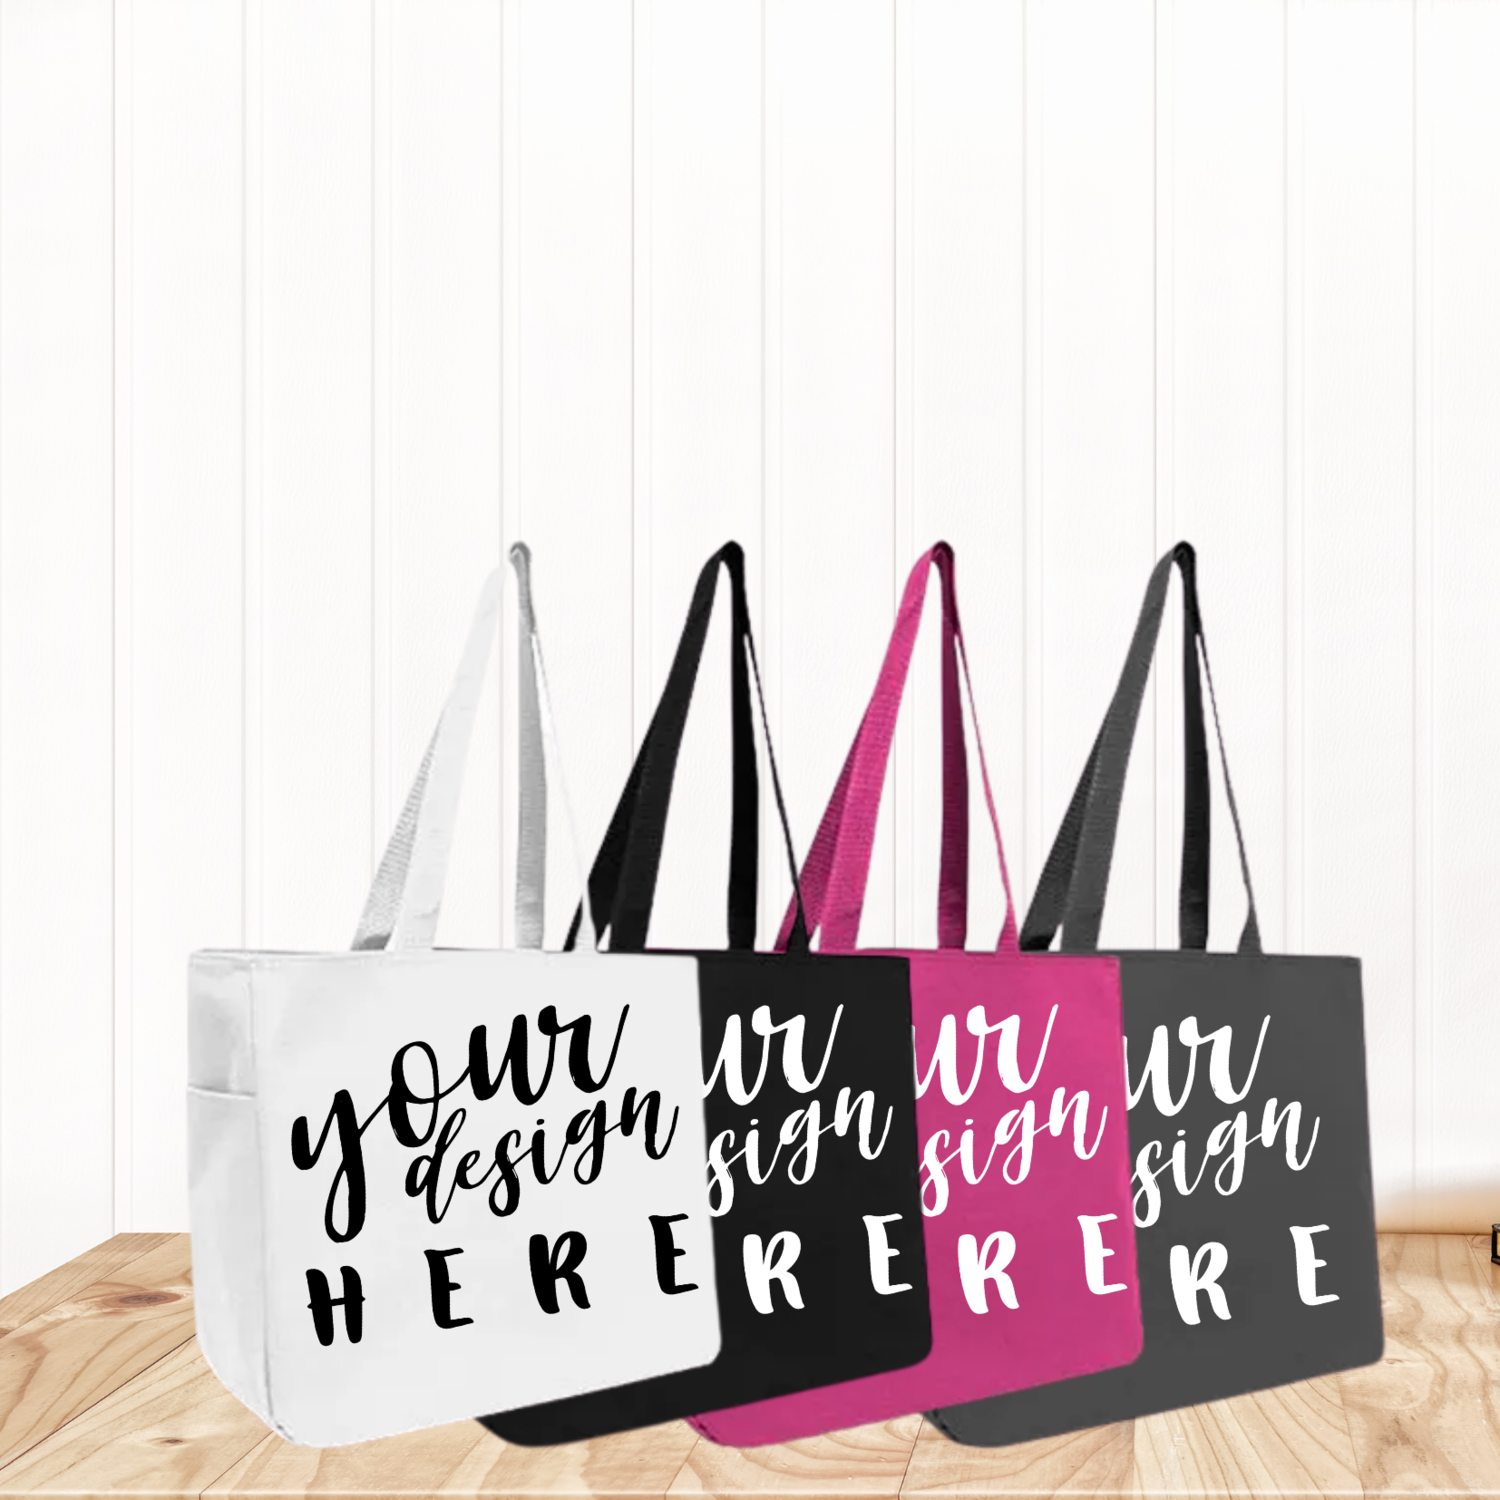 Customized Totes